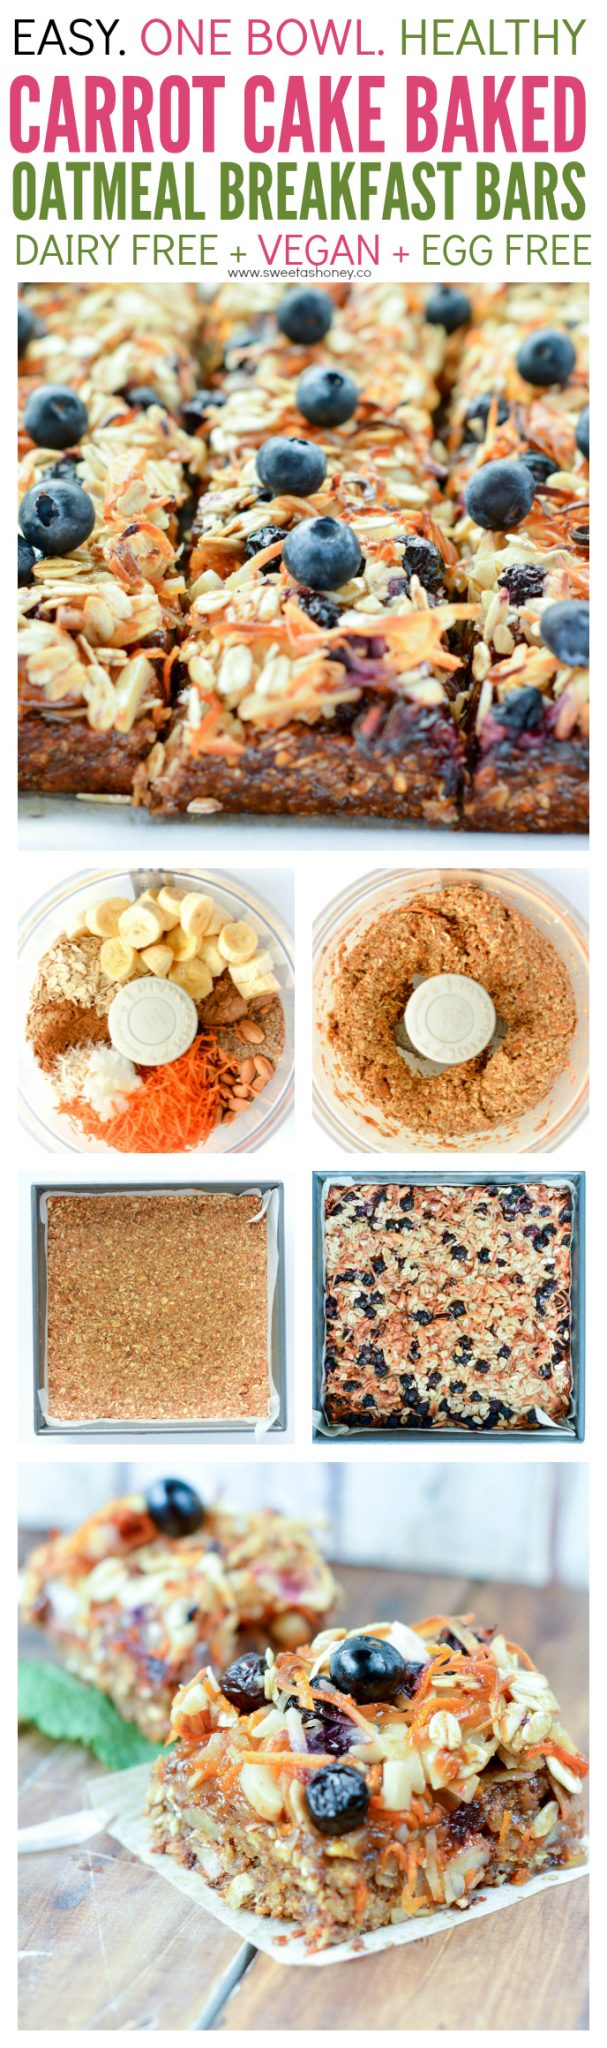 Carrot Cake Oatmeal Breakfast Bars are super easy and healthy. A 10 minutes blender recipe, 100% vegan, full of plant based protein from almonds, flaxseeds, oats, almond butter and sweet banana and blueberry. A great homemade on-the-go breakfast bar.